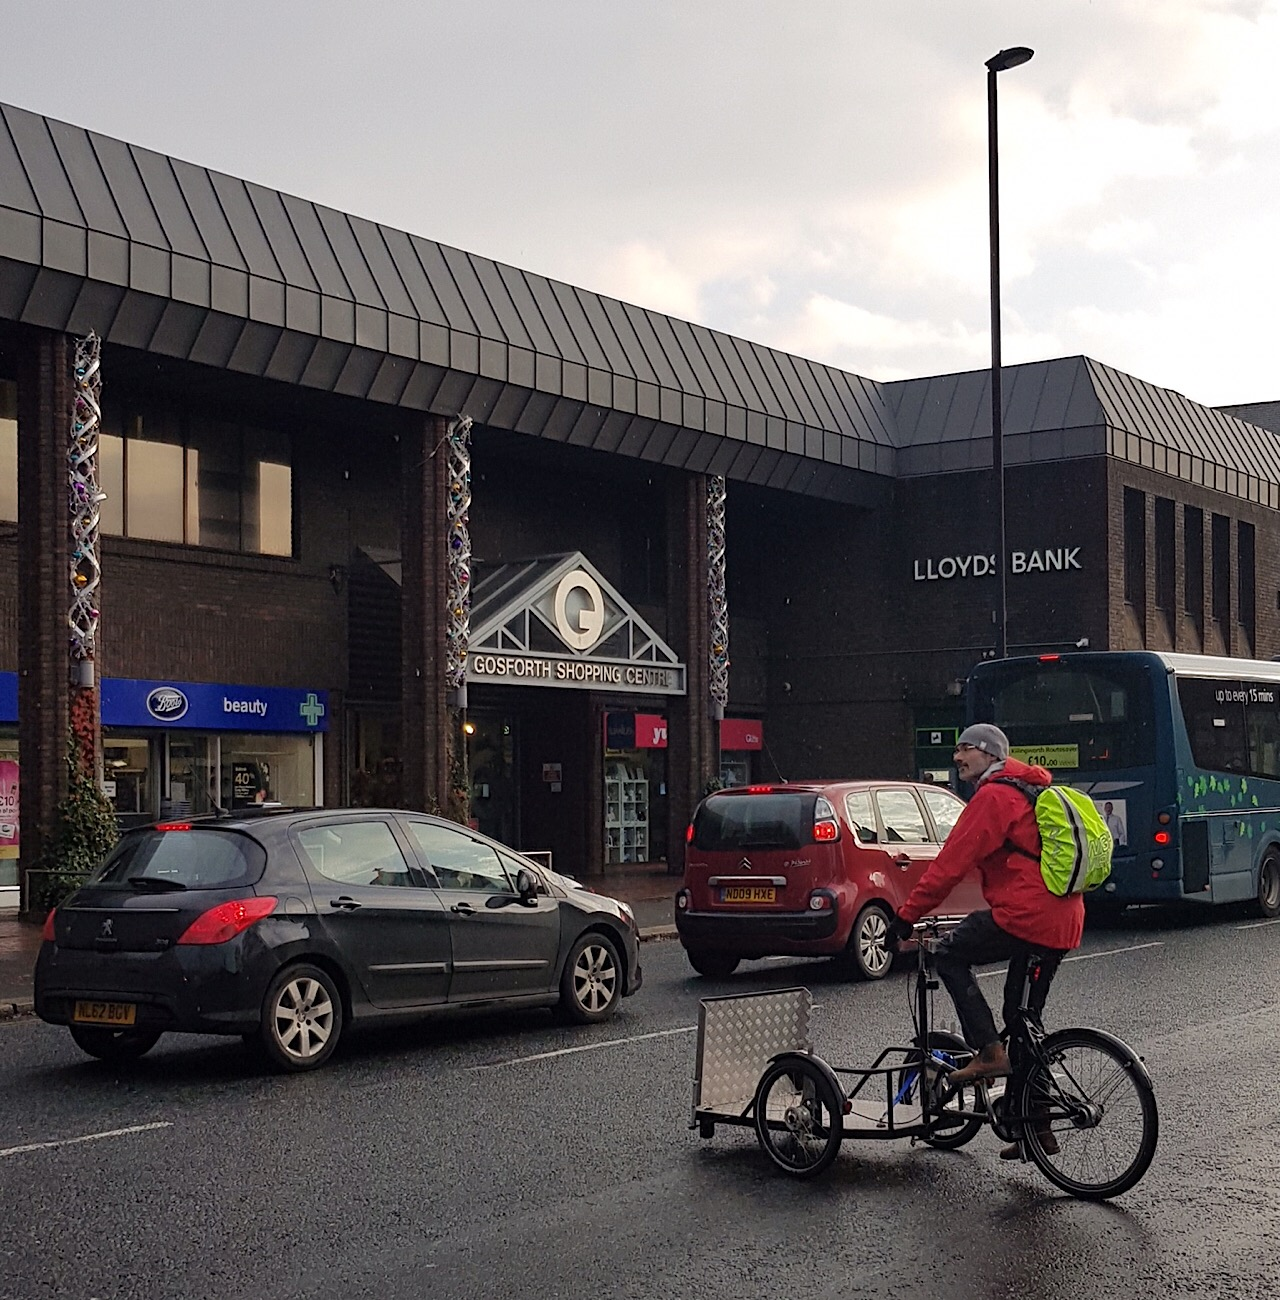 Picture of adapted cycle rider trying to cross traffic on Gosforth High Street.